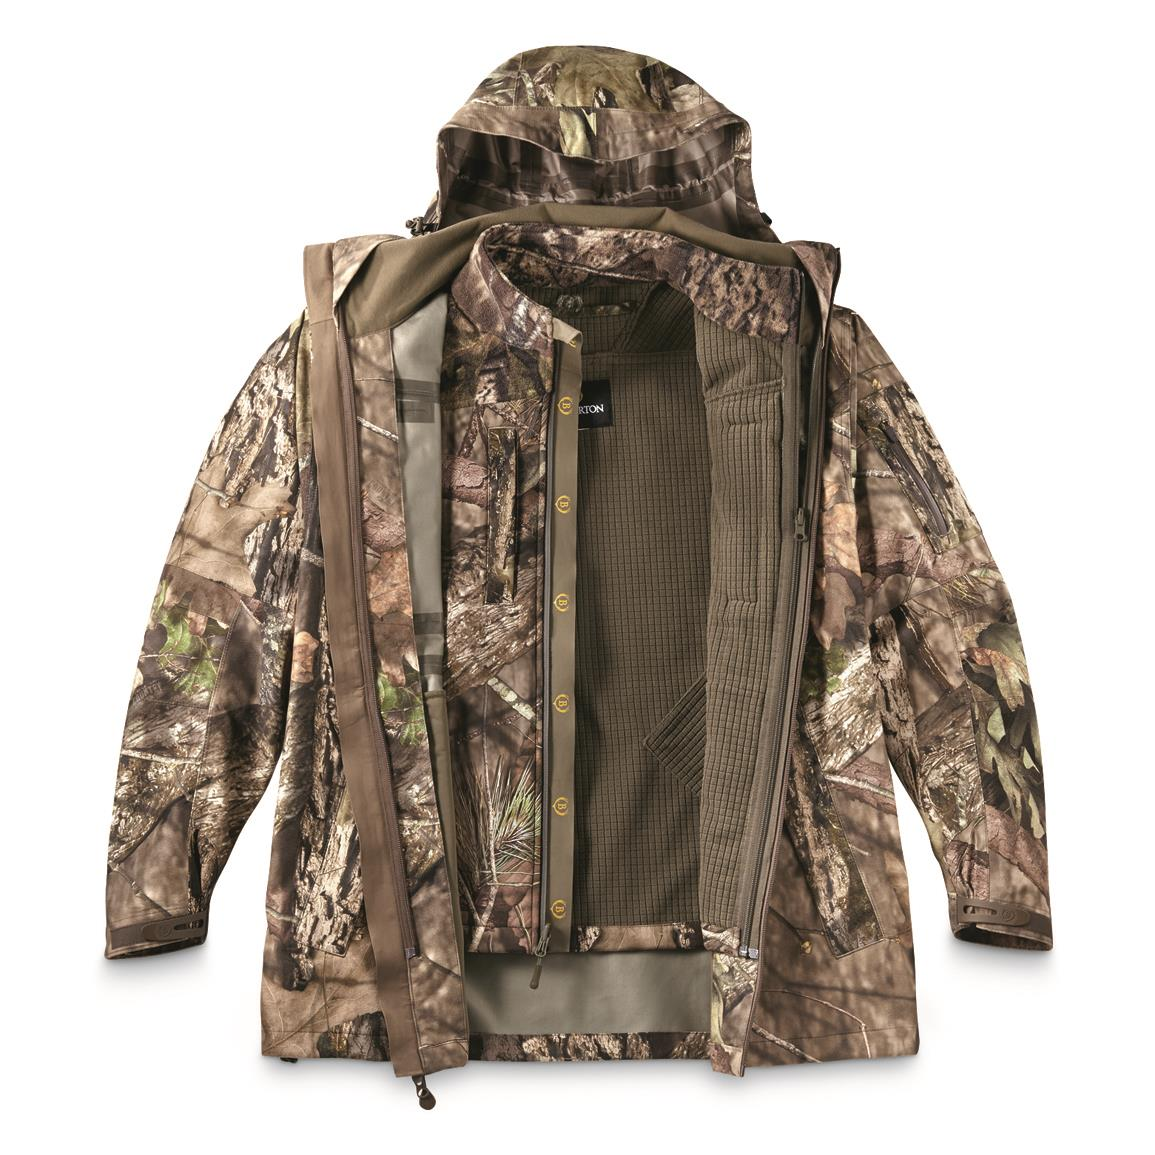 Bolderton Men's Outlands All-Climate Series Waterproof Parka Shell with Softshell Liner Jacket, Mossy Oak Break-Up® COUNTRY™